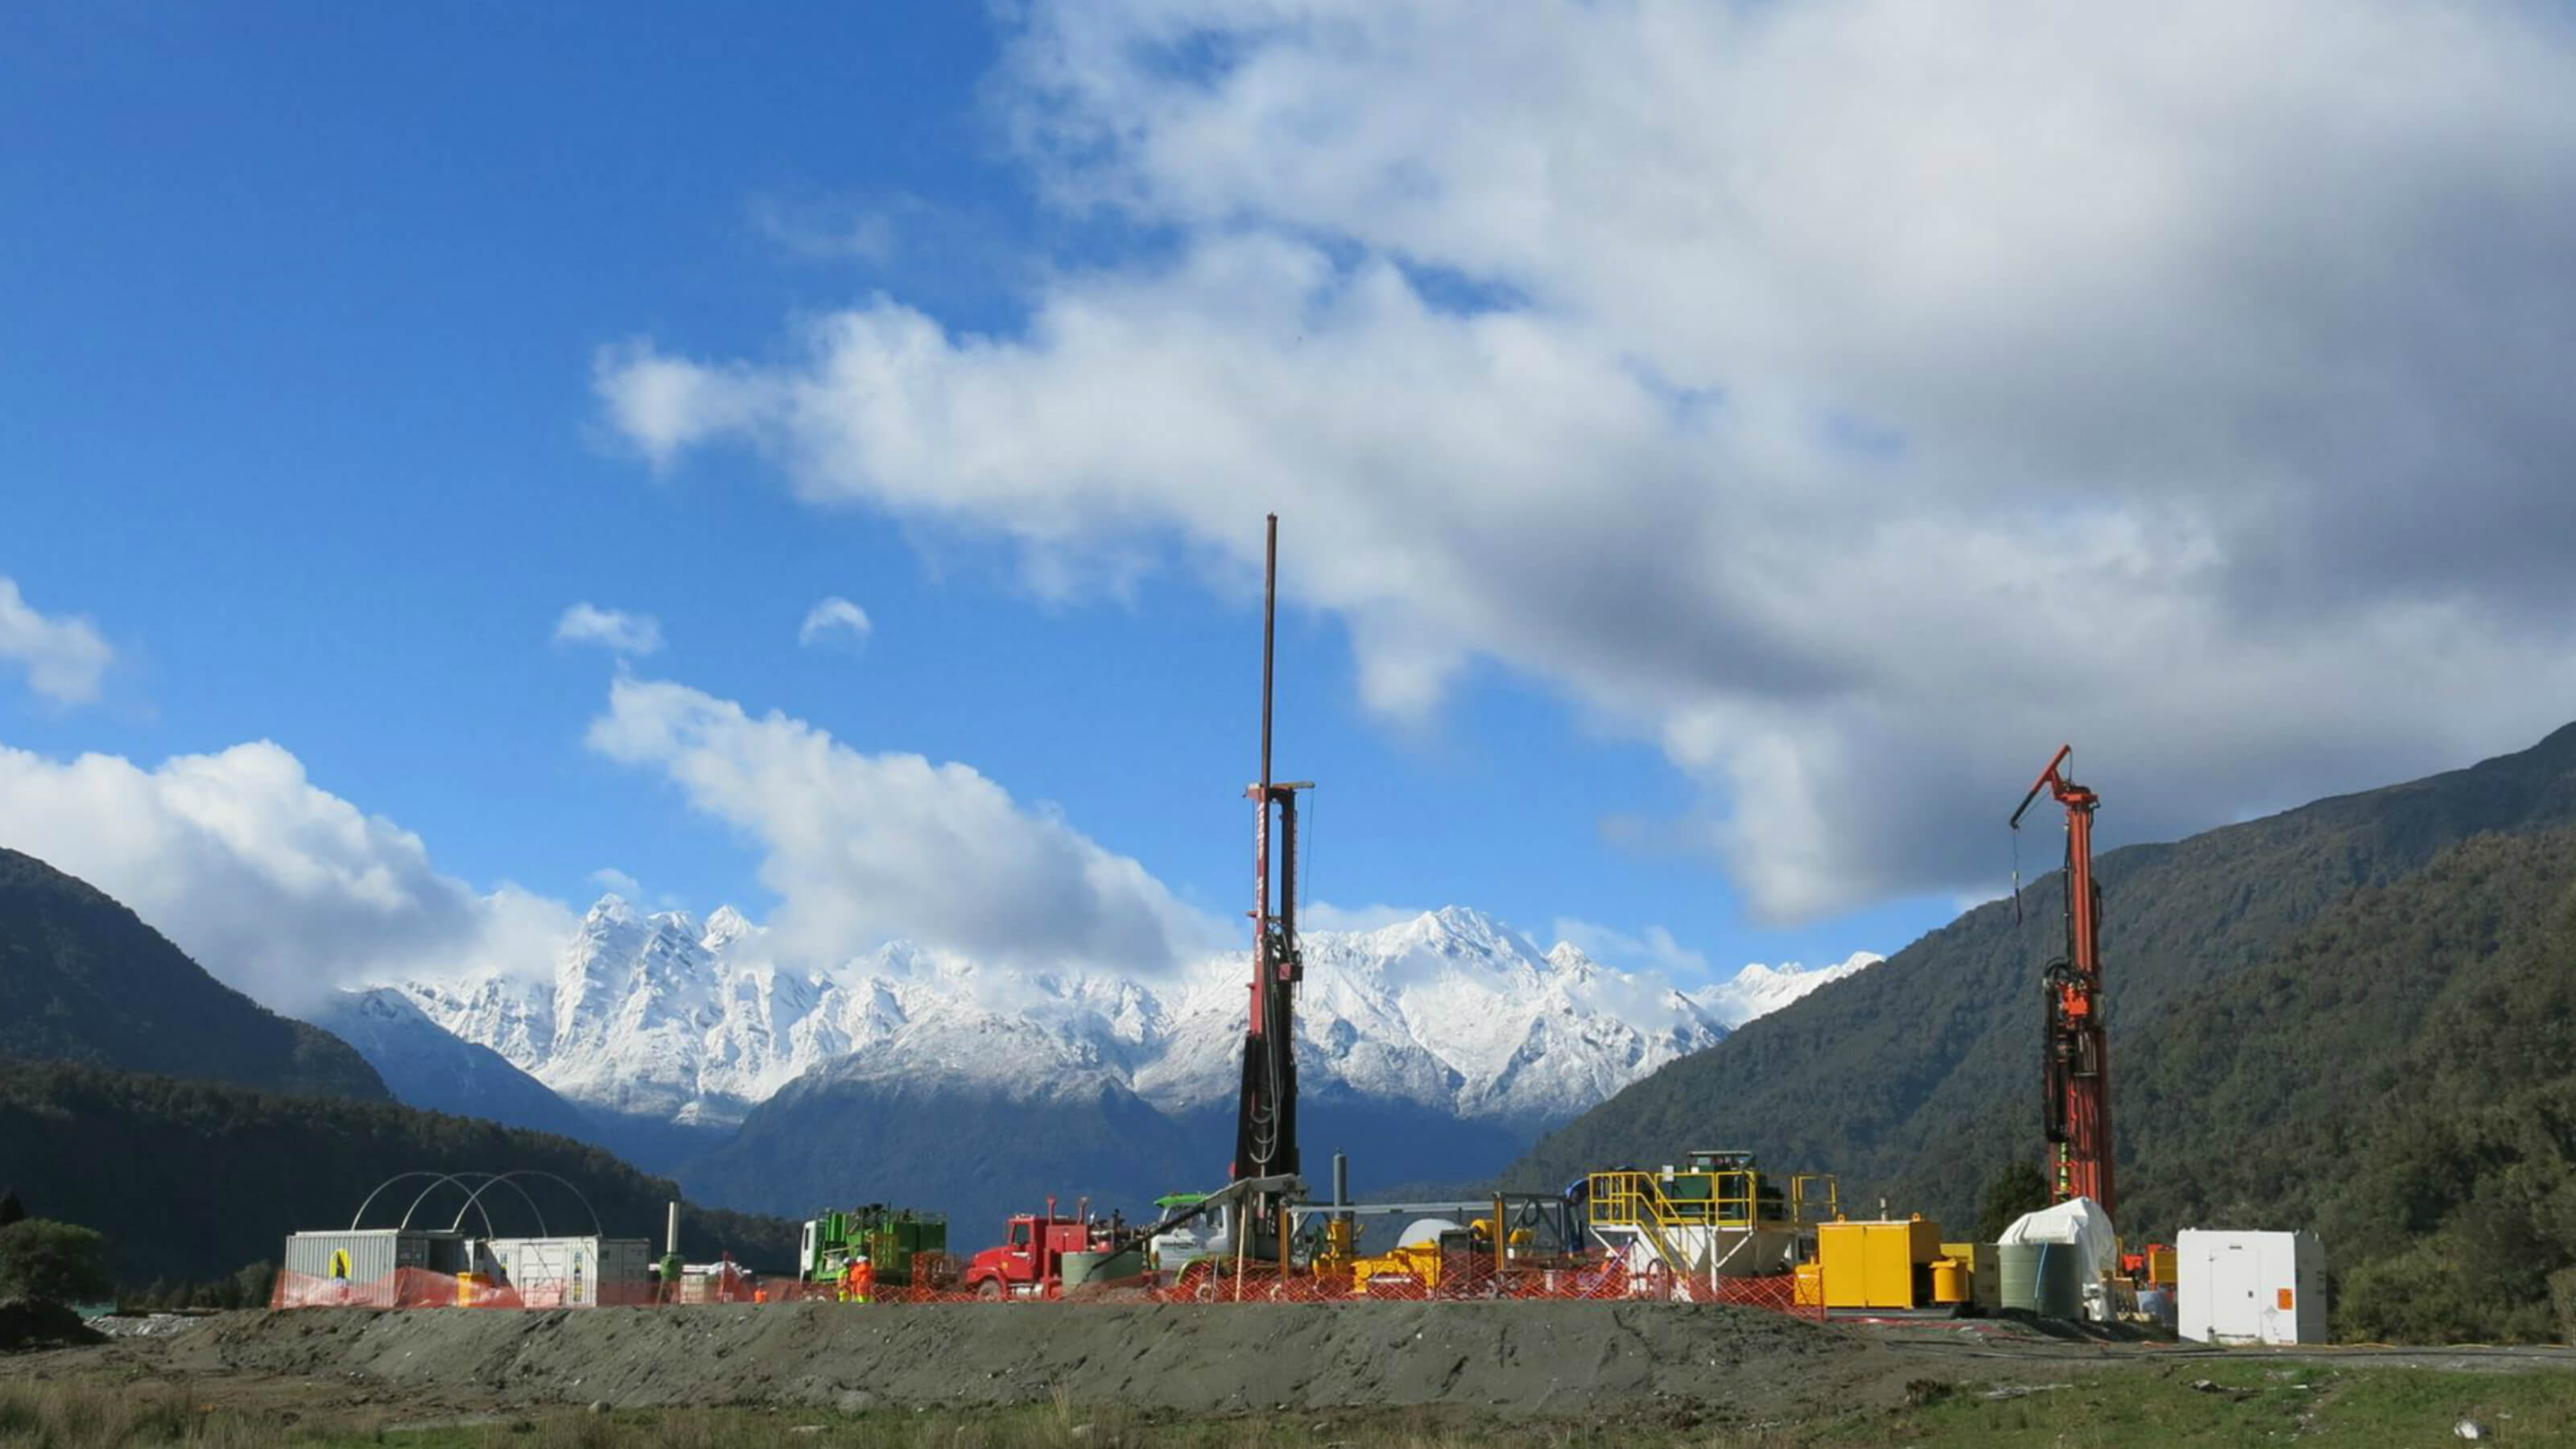 The Deep Fault Drilling Project, with a tall piece of drilling apparatus in the middle. The Southern Alps are in the background.